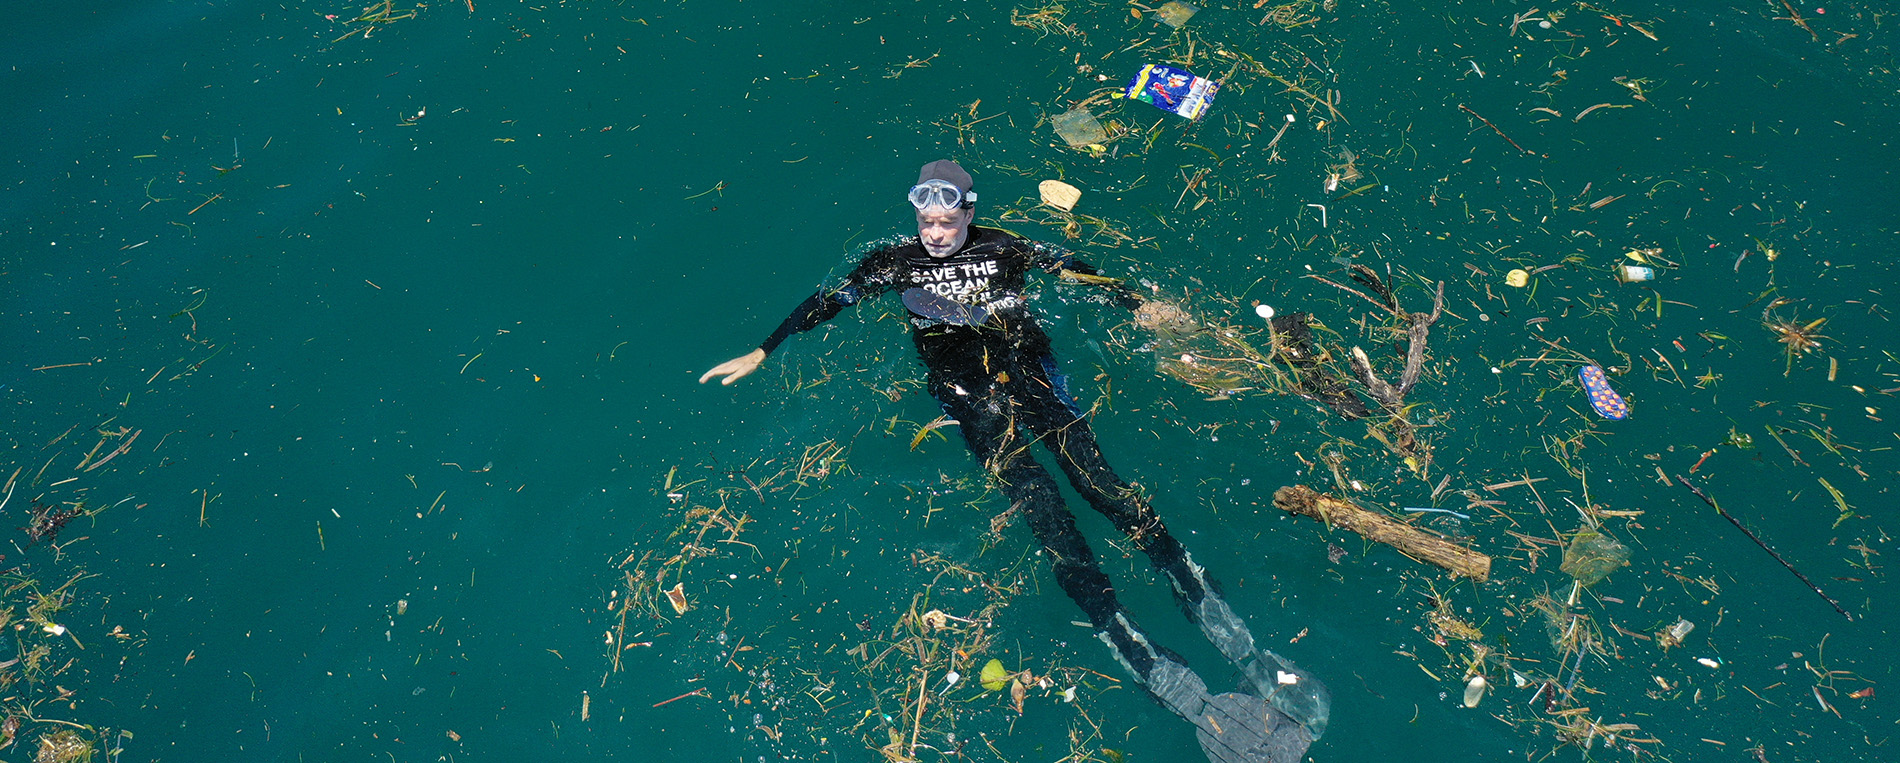 Fisk Johnson floating in the ocean surrounded by plastic debris